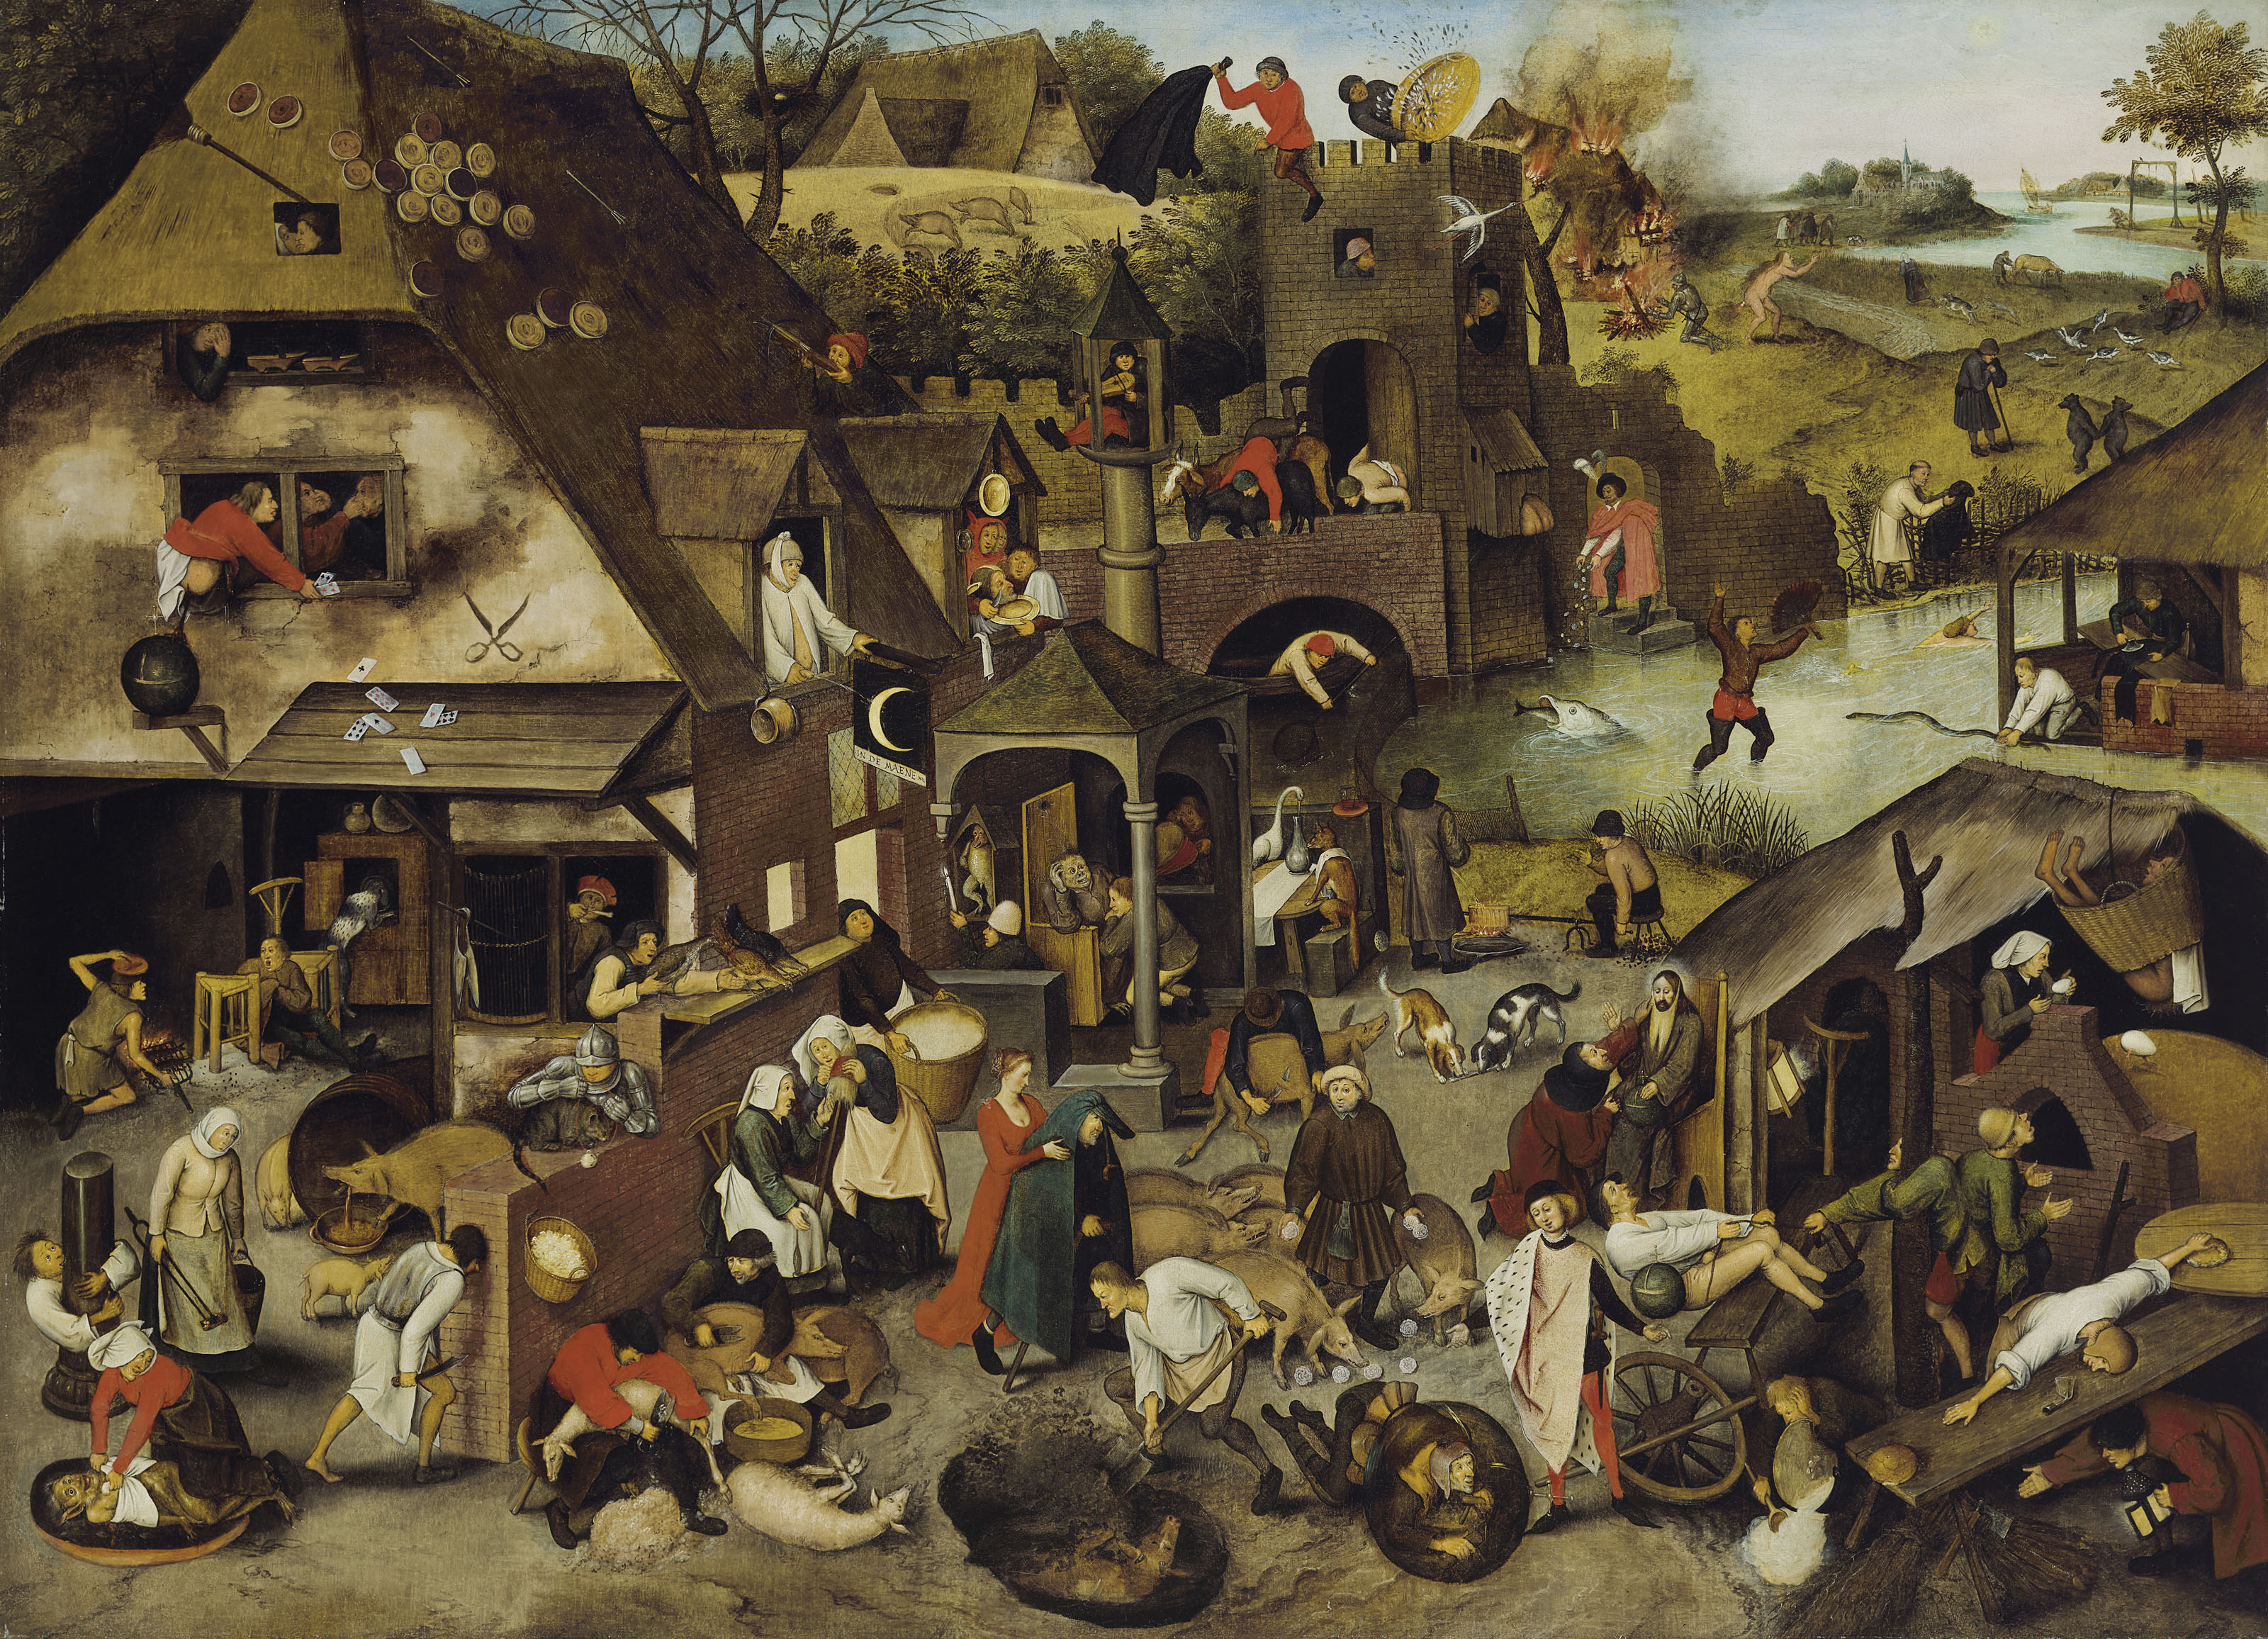 The Netherlandish Proverbs